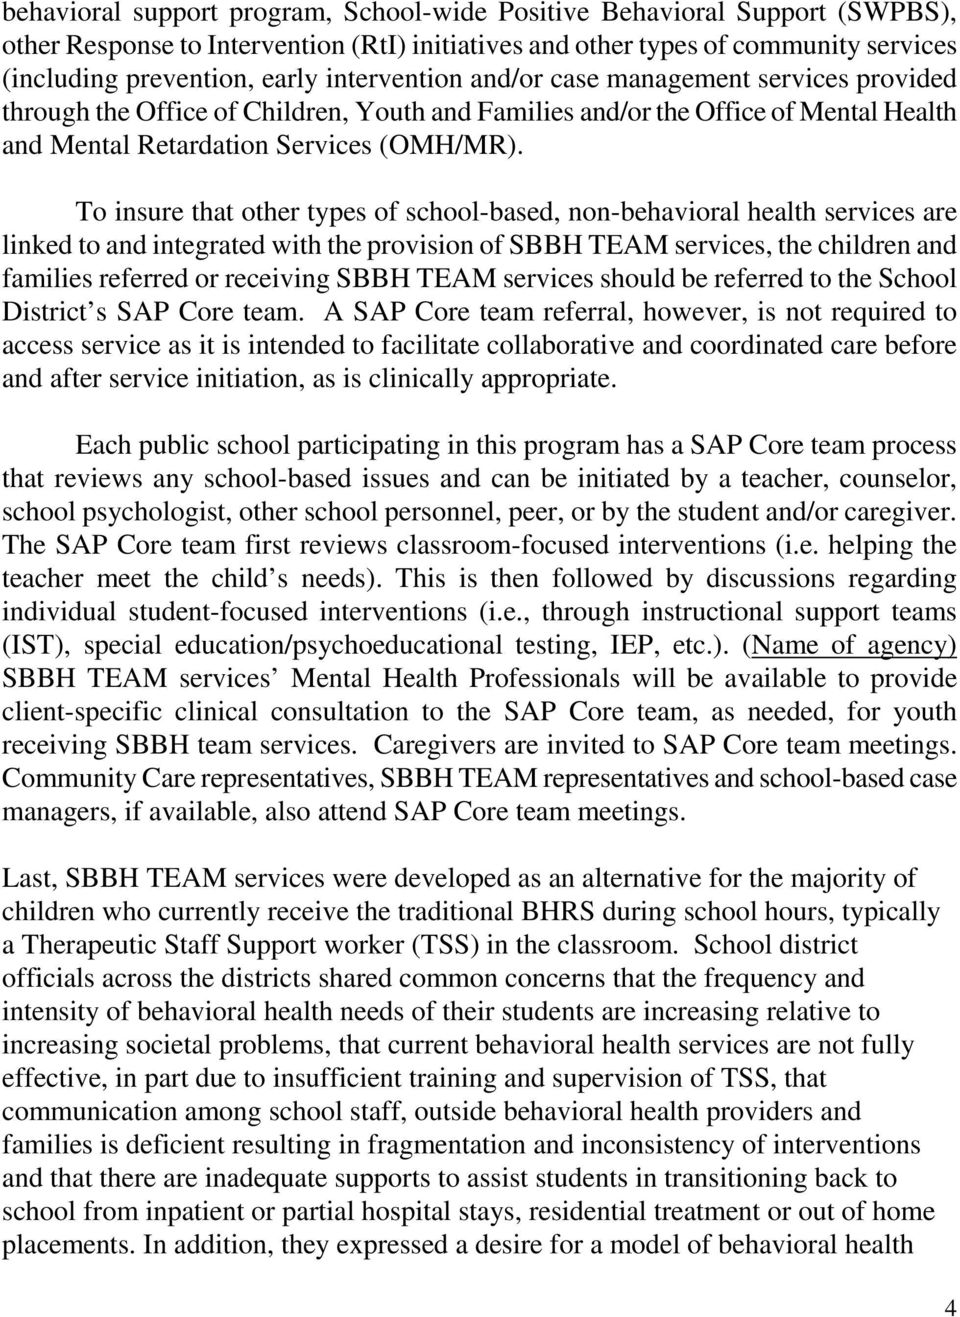 To insure that other types of school-based, non-behavioral health services are linked to and integrated with the provision of SBBH TEAM services, the children and families referred or receiving SBBH